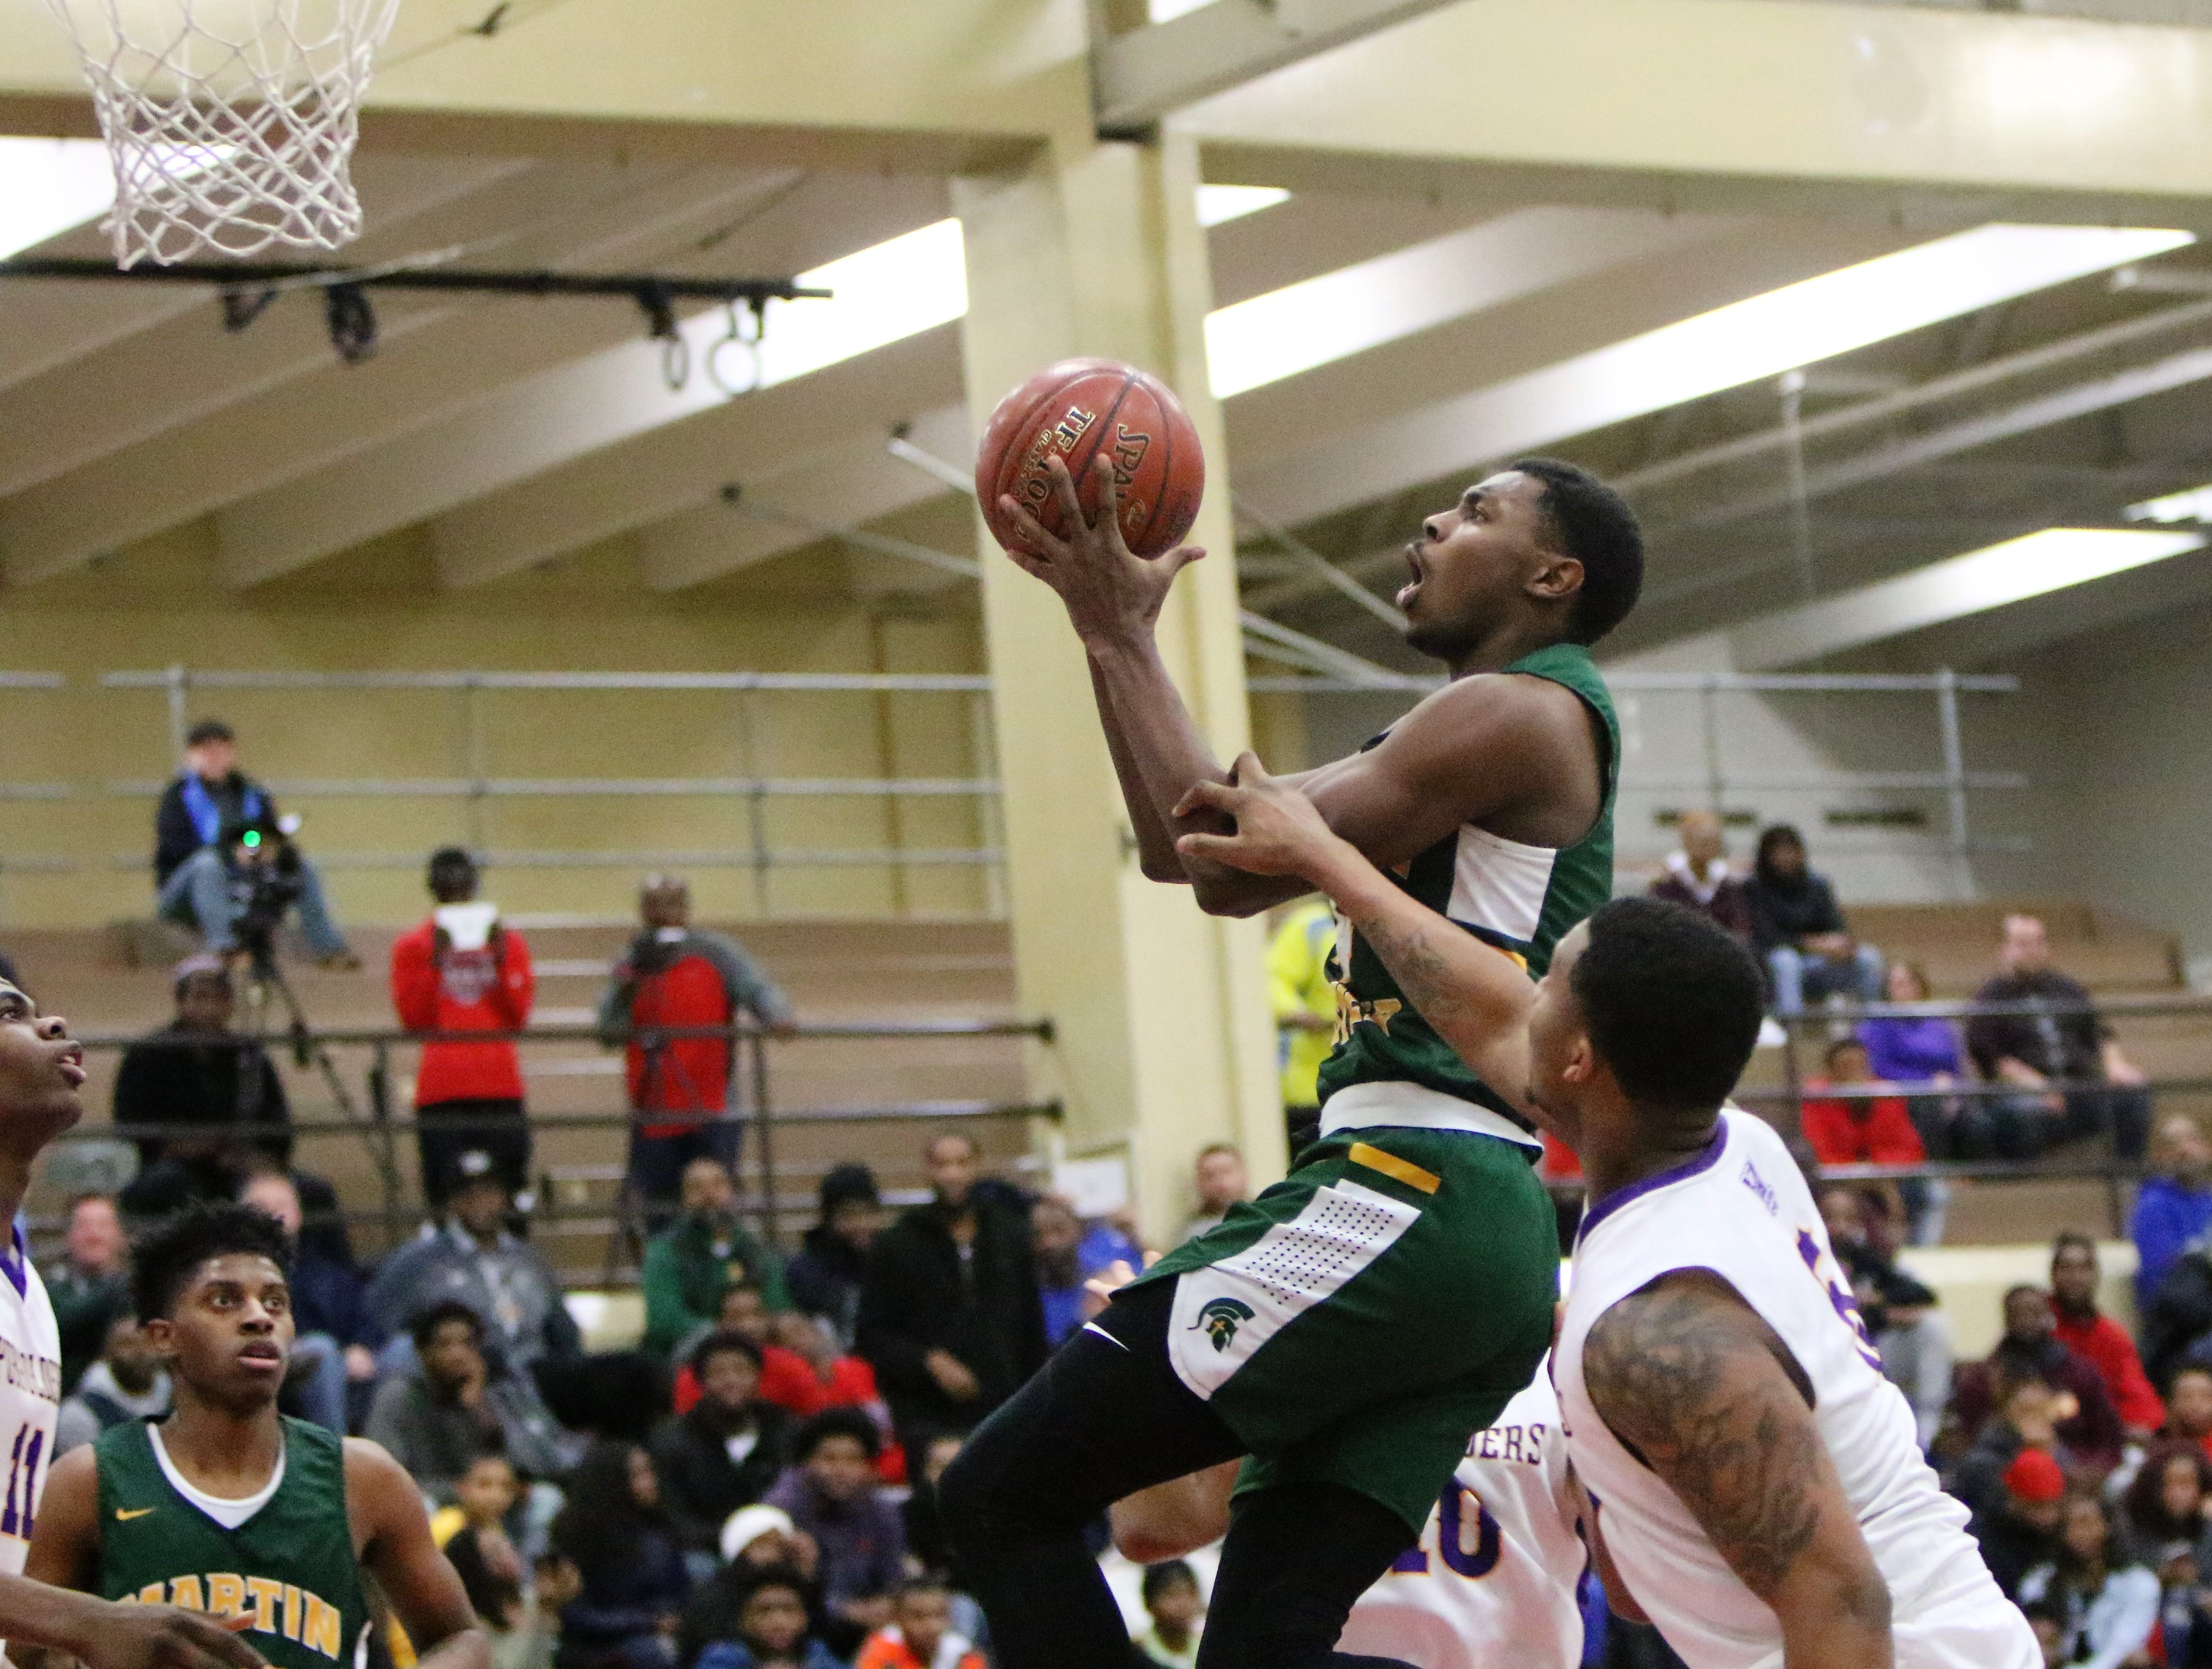 Martin Luther guard Xzavier Jones rises up for a layup against Milwaukee Washington during the Terry Porter Classic on Saturday.